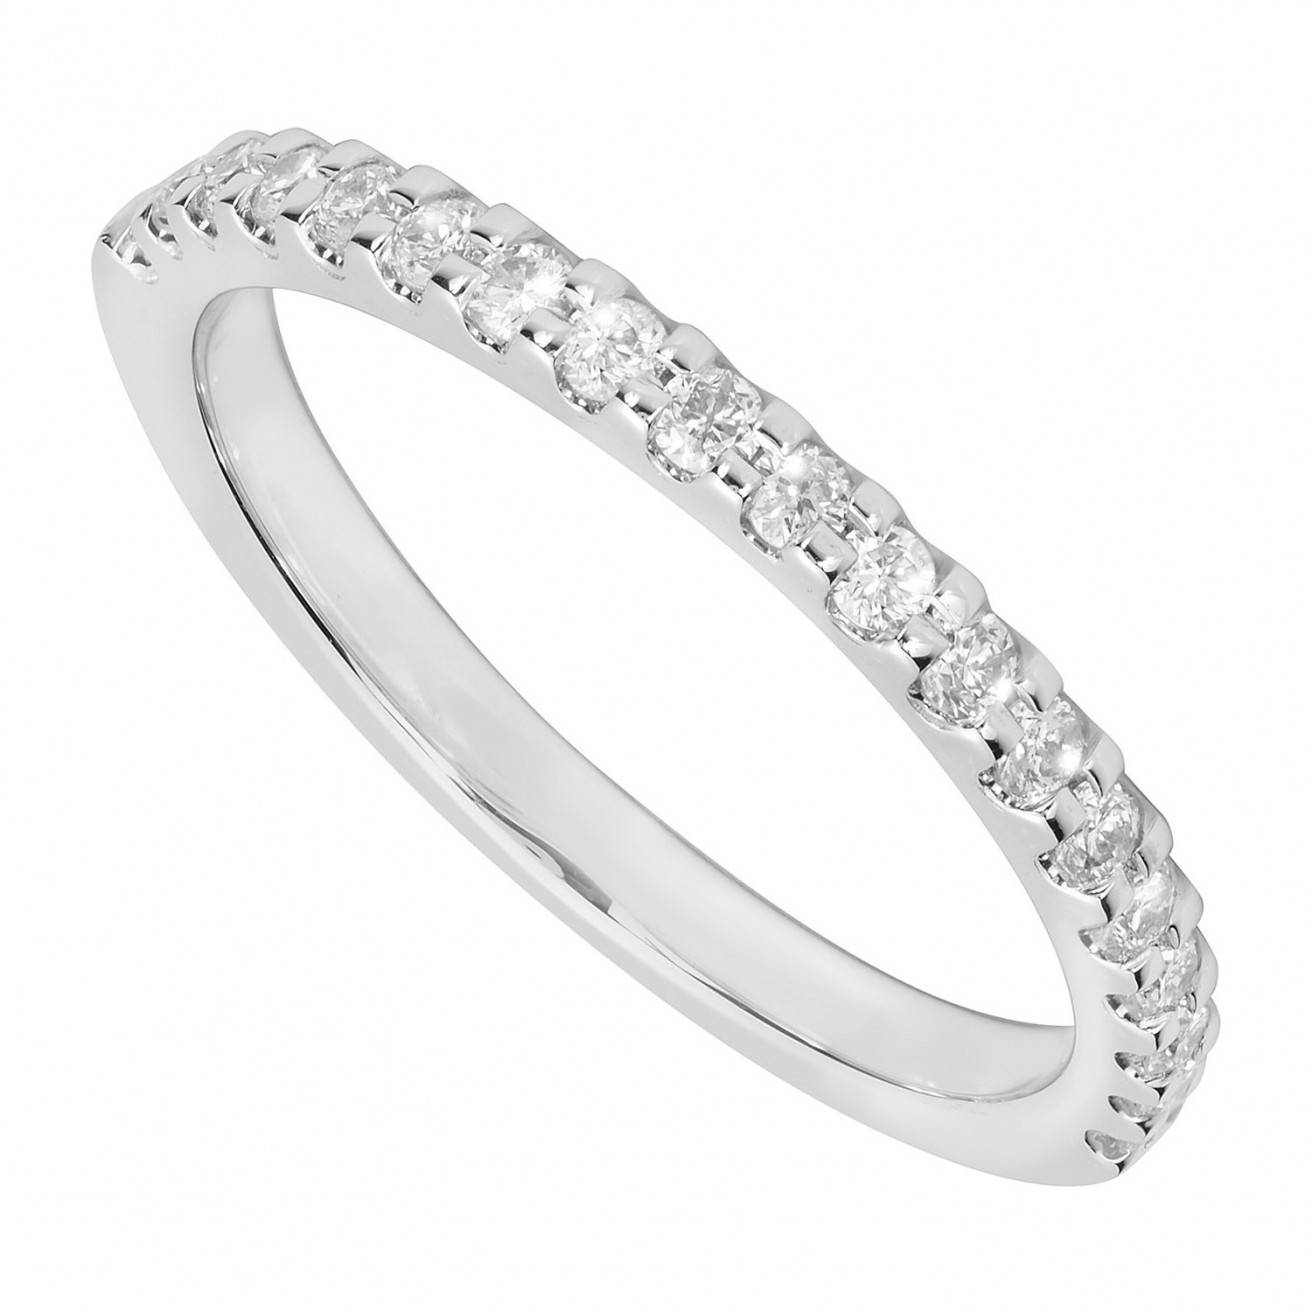 Buy Wedding Rings – Diamond, Platinum, Silver, Gold – Fraser Hart For Platinum And Diamond Wedding Rings (View 4 of 15)